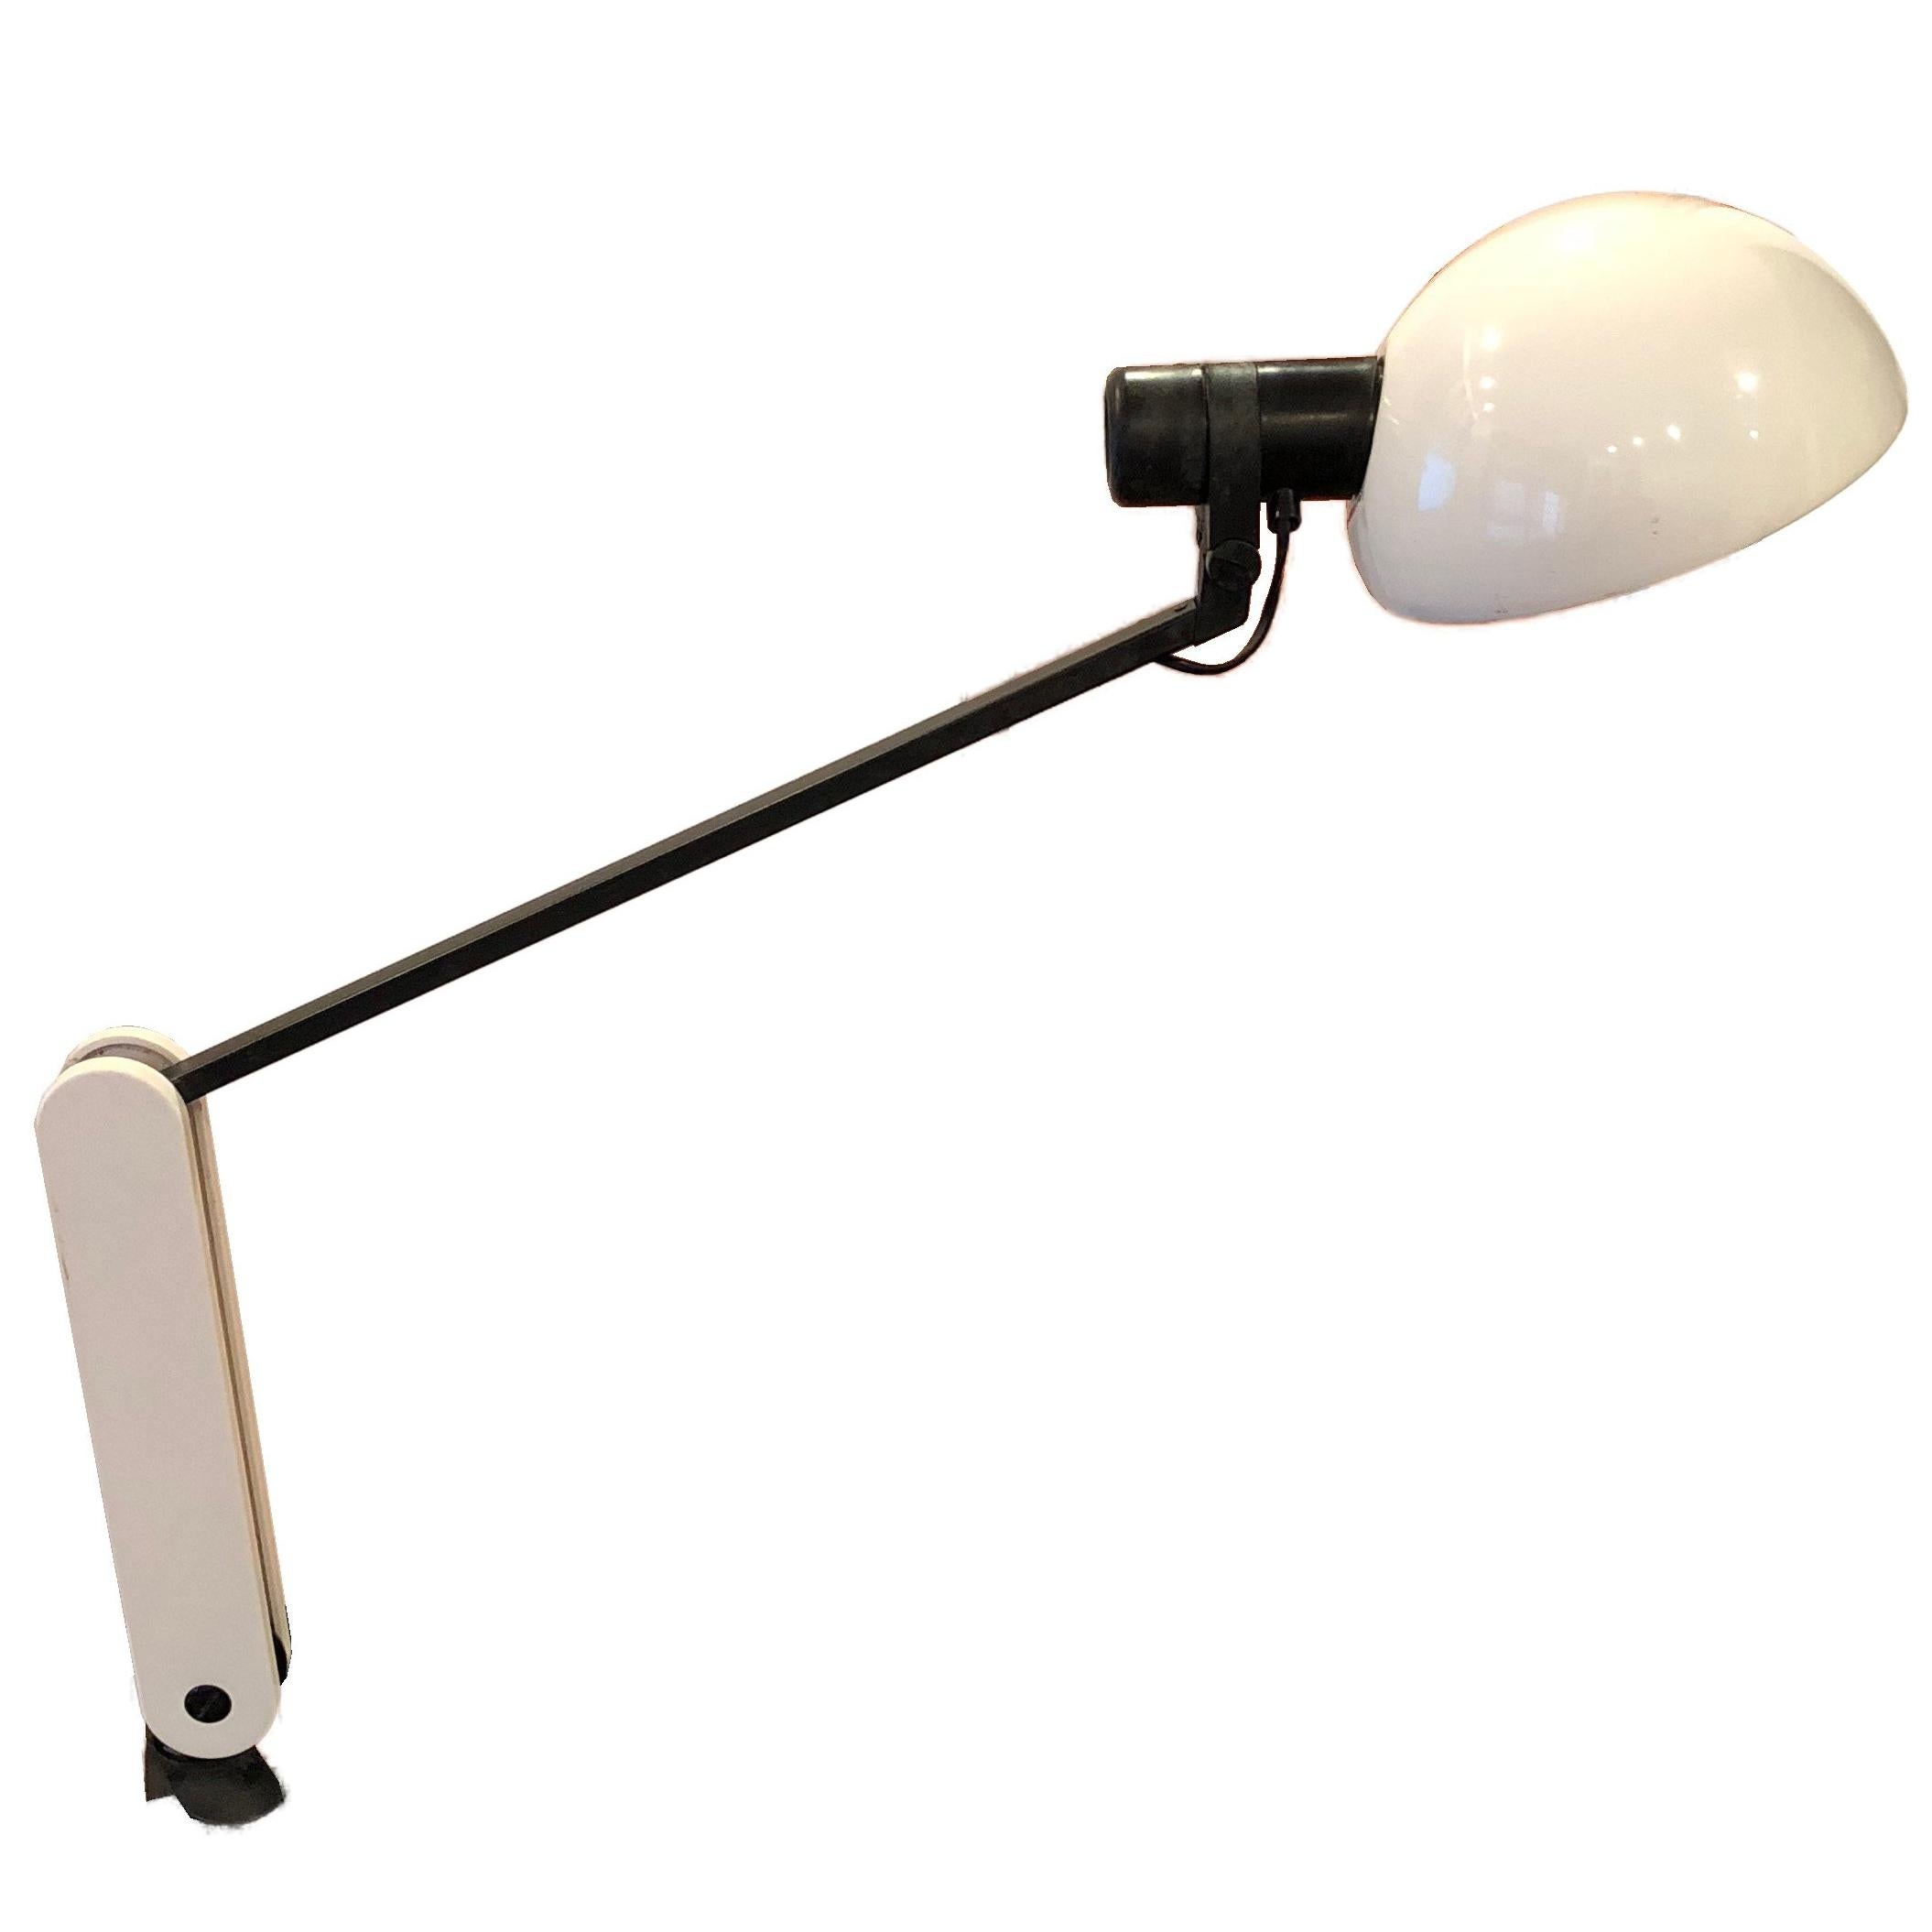 1970s Guzzini White and Black Desk Lamp with Movable Base, Mid-Century Modern